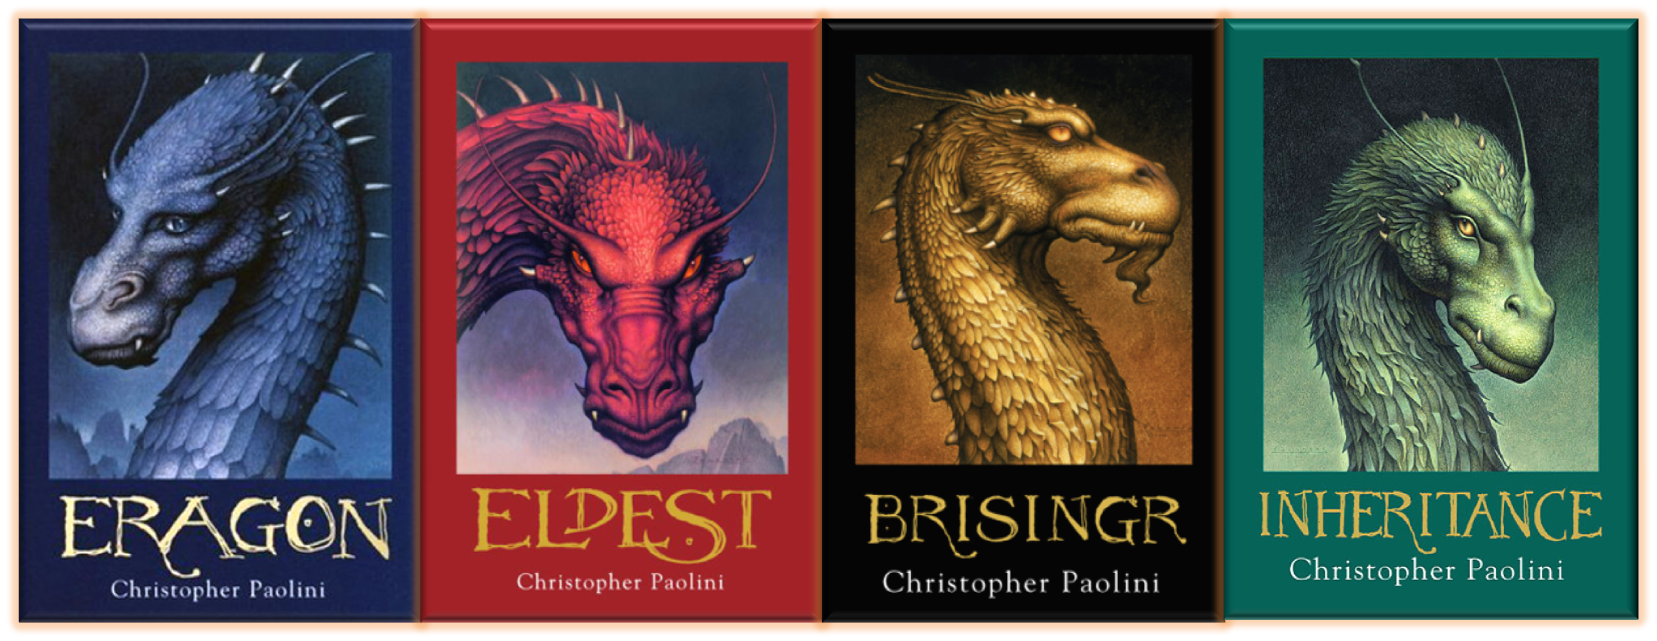 The Inheritance Cycle Covers from https://brownbooks.org/2012/09/09/the-inheritance-cycle/